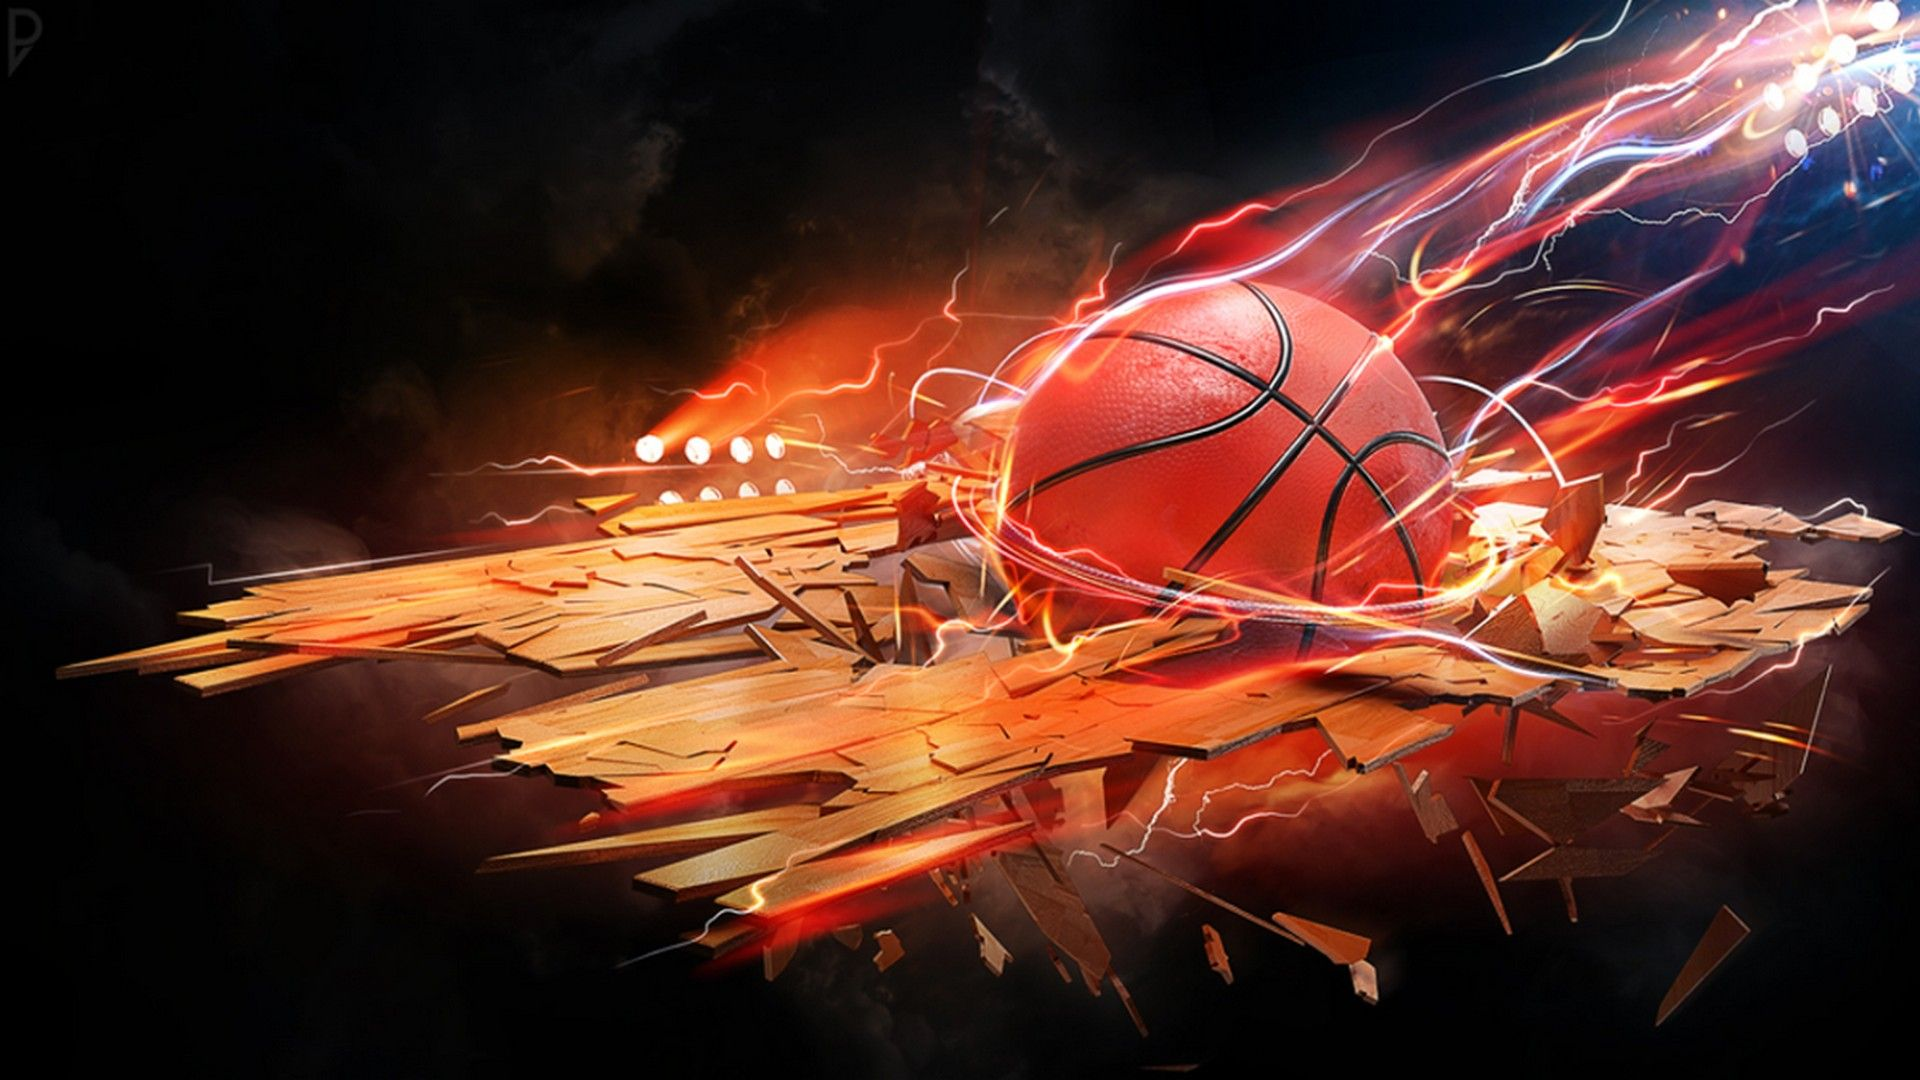 Basketball Mac Backgrounds 2020 Basketball Wallpaper Cool Basketball Wallpapers Basketball Wallpaper Basketball Background